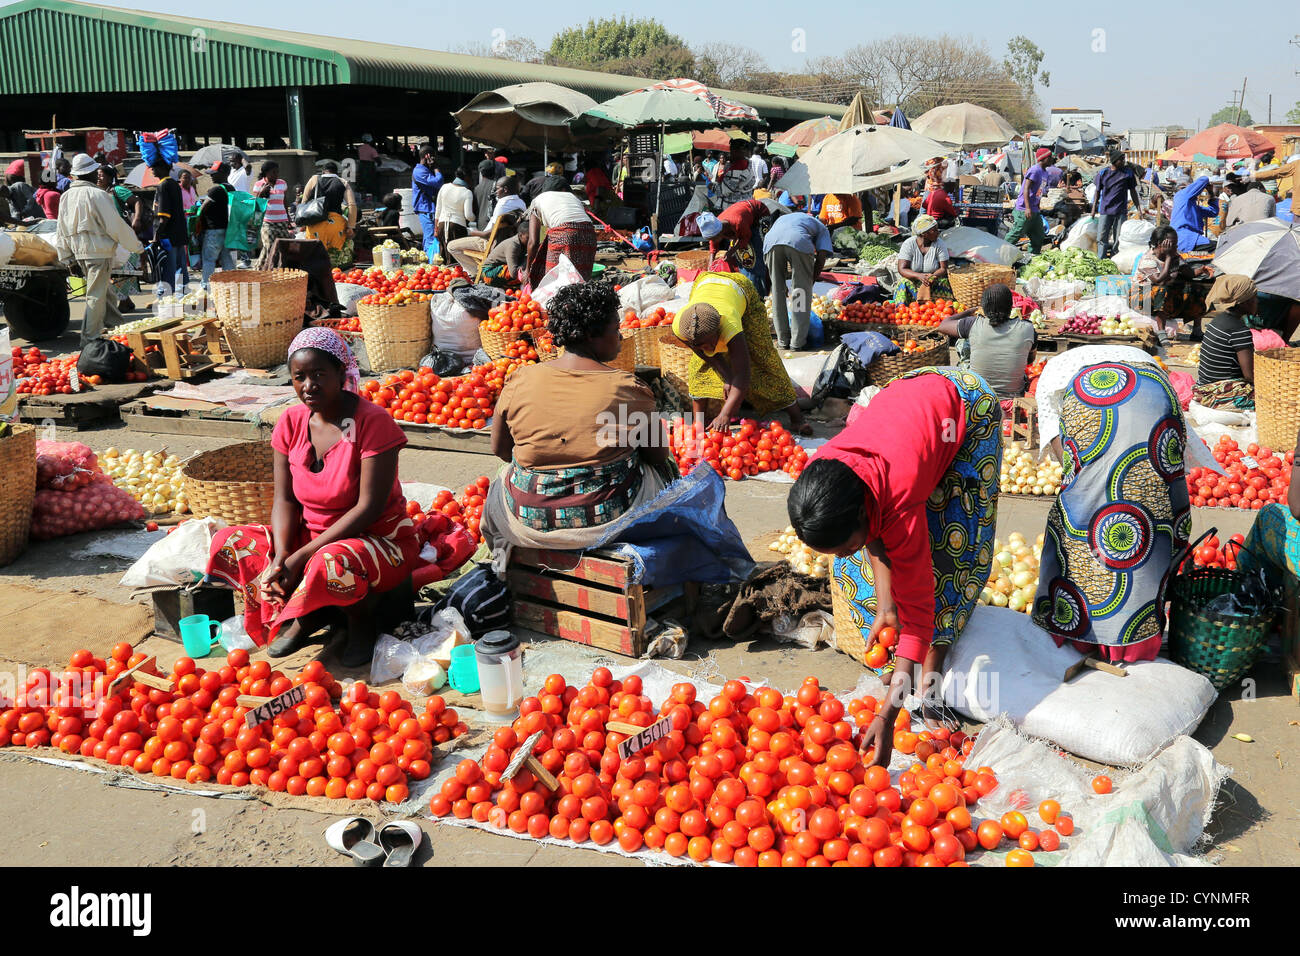 Female vendors with displays of vegetables at the Old Soweto market in Lusaka, Zambia - Stock Image